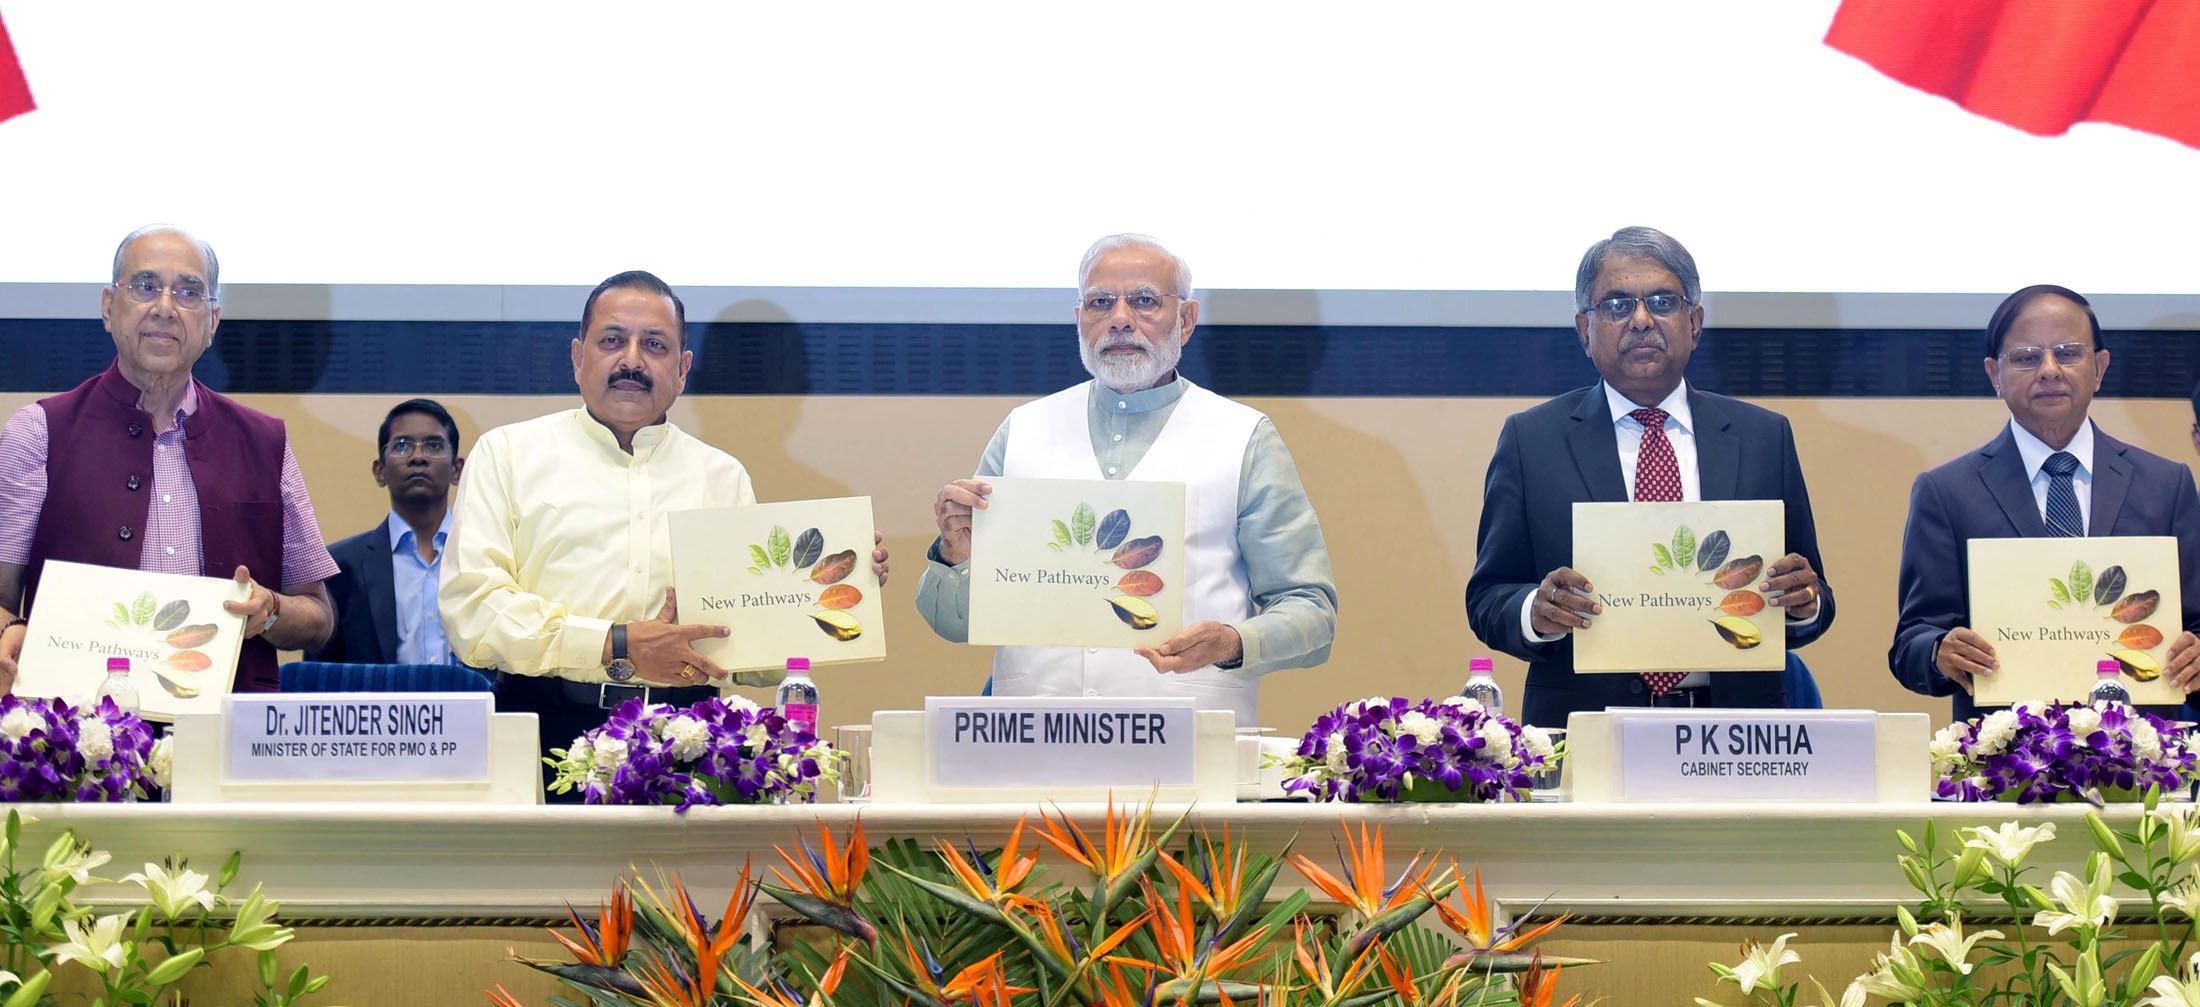 The Prime Minister, Shri Narendra Modi releasing the book on the occasion of the 12th Civil Services Day, in New Delhi on April 21, 2018. The Minister of State for Development of North Eastern Region (I/C), Prime Minister's Office, Personnel, Public Grievances & Pensions, Atomic Energy and Space, Dr. Jitendra Singh, the Cabinet Secretary, Shri P.K. Sinha and other dignitaries are also seen.